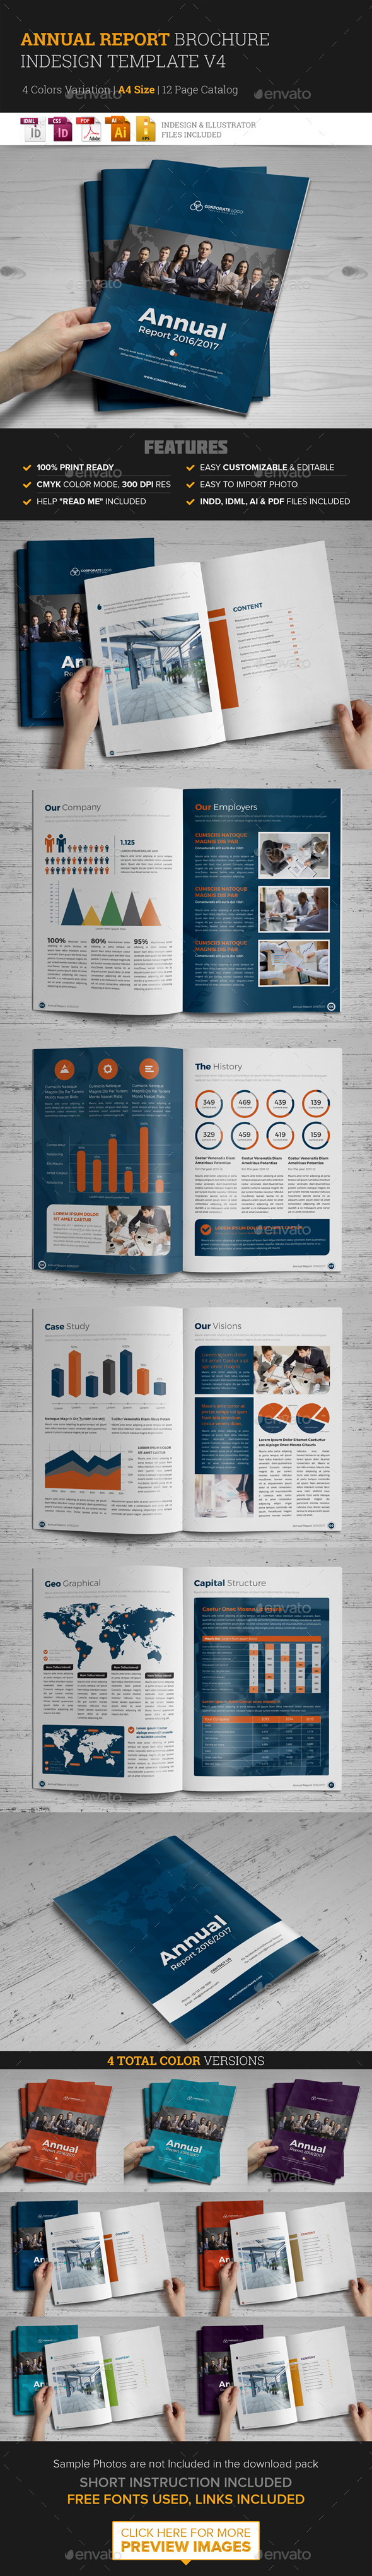 Annual Report Brochure Indesign Template 4  - Corporate Brochures